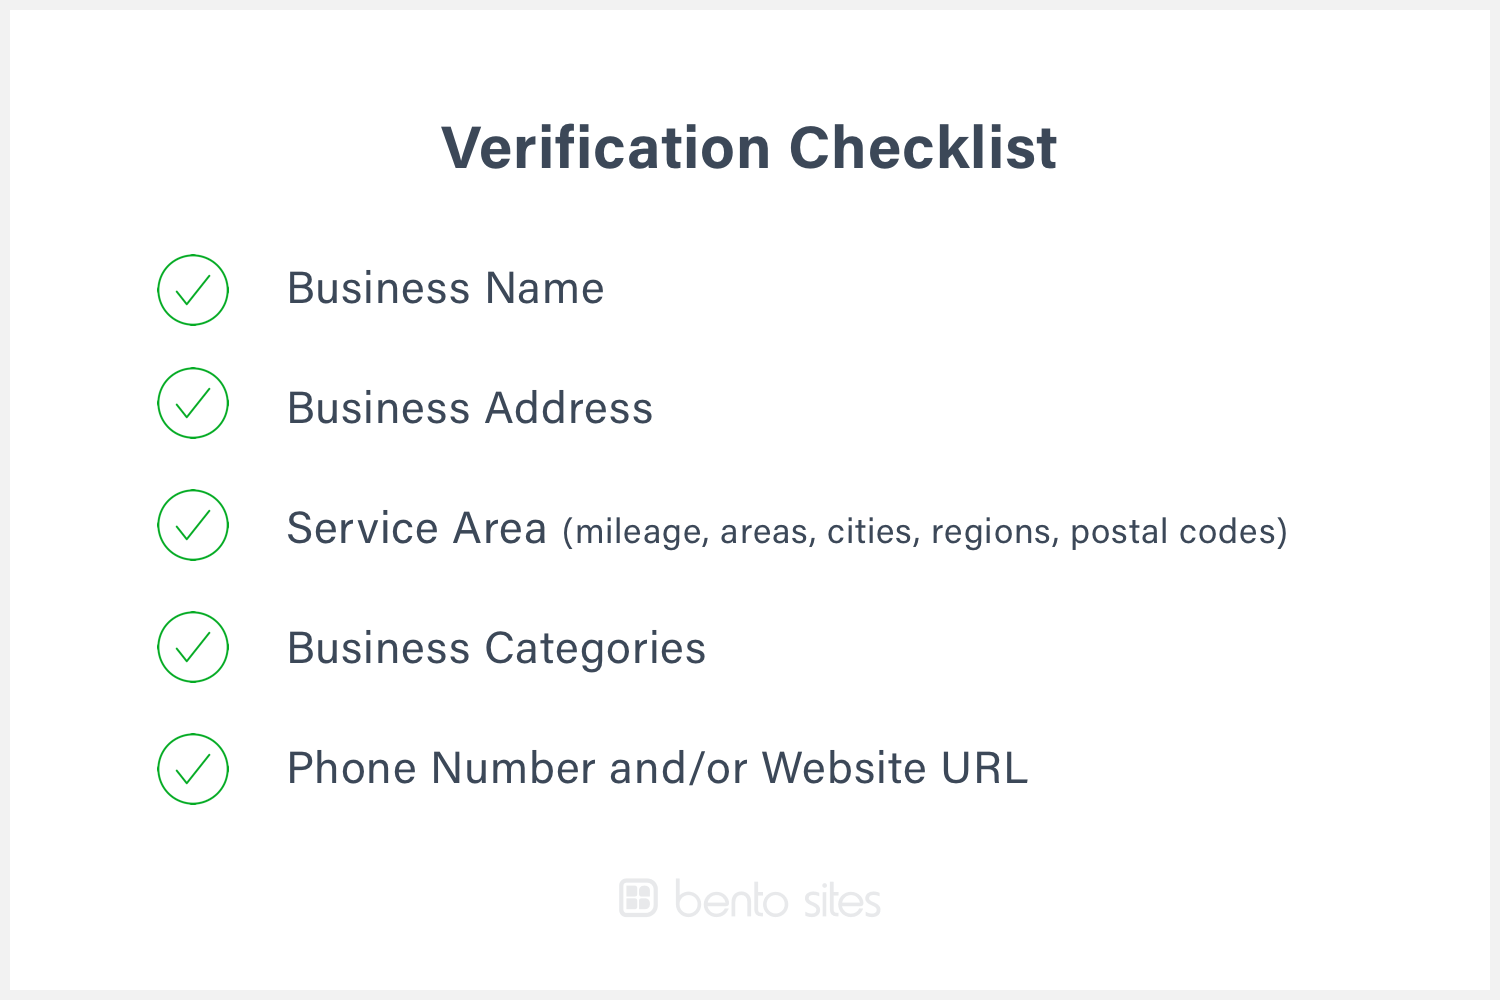 Checklist for verifying business listings